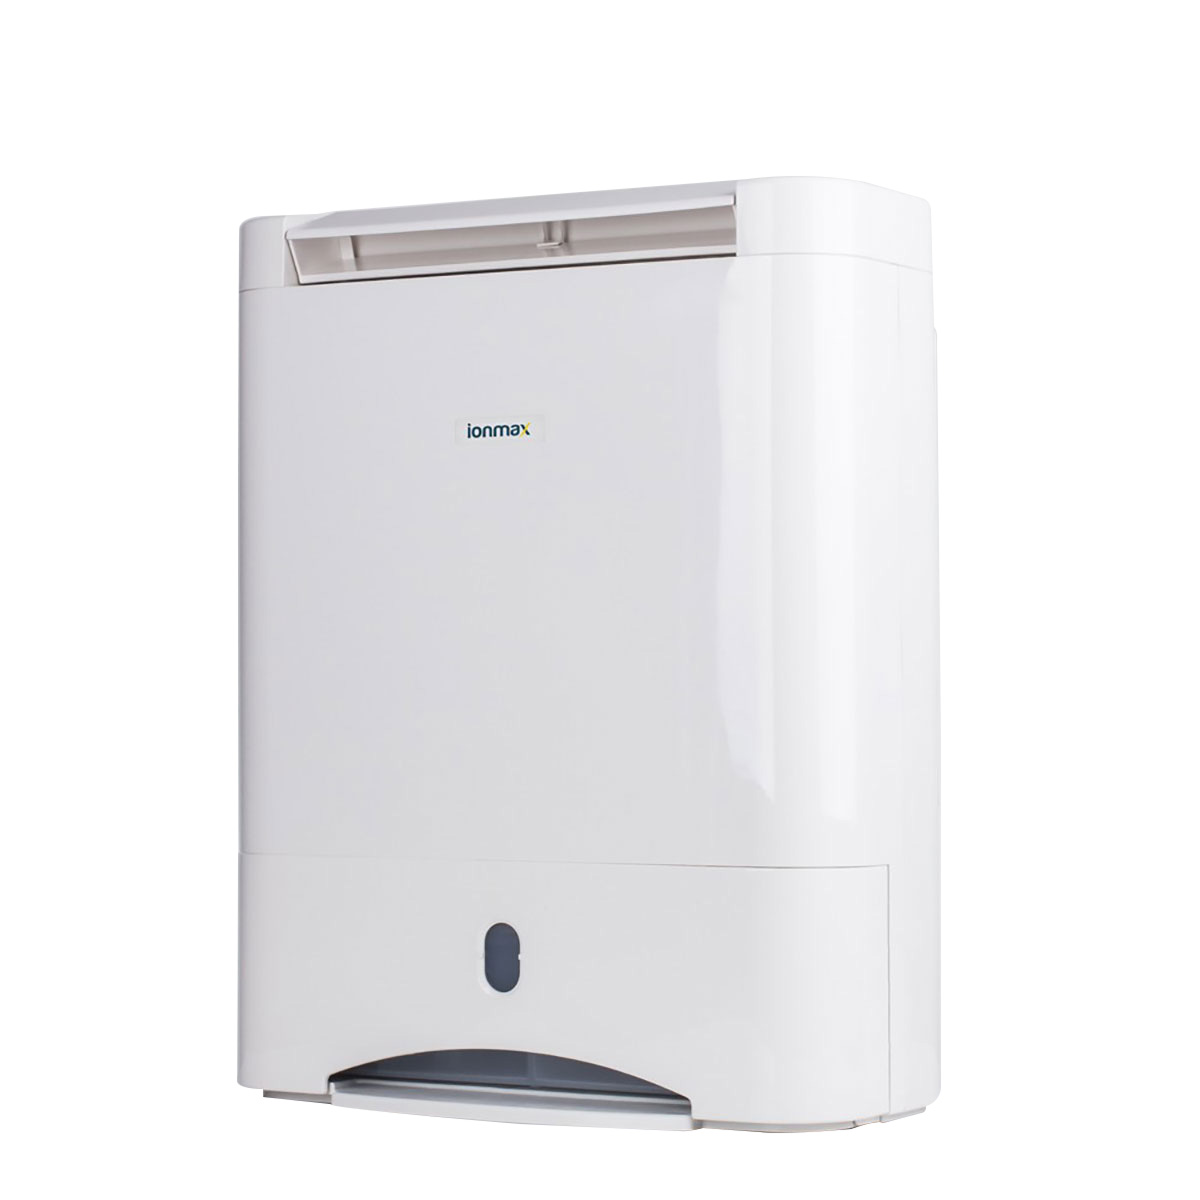 Ionmax ION 632